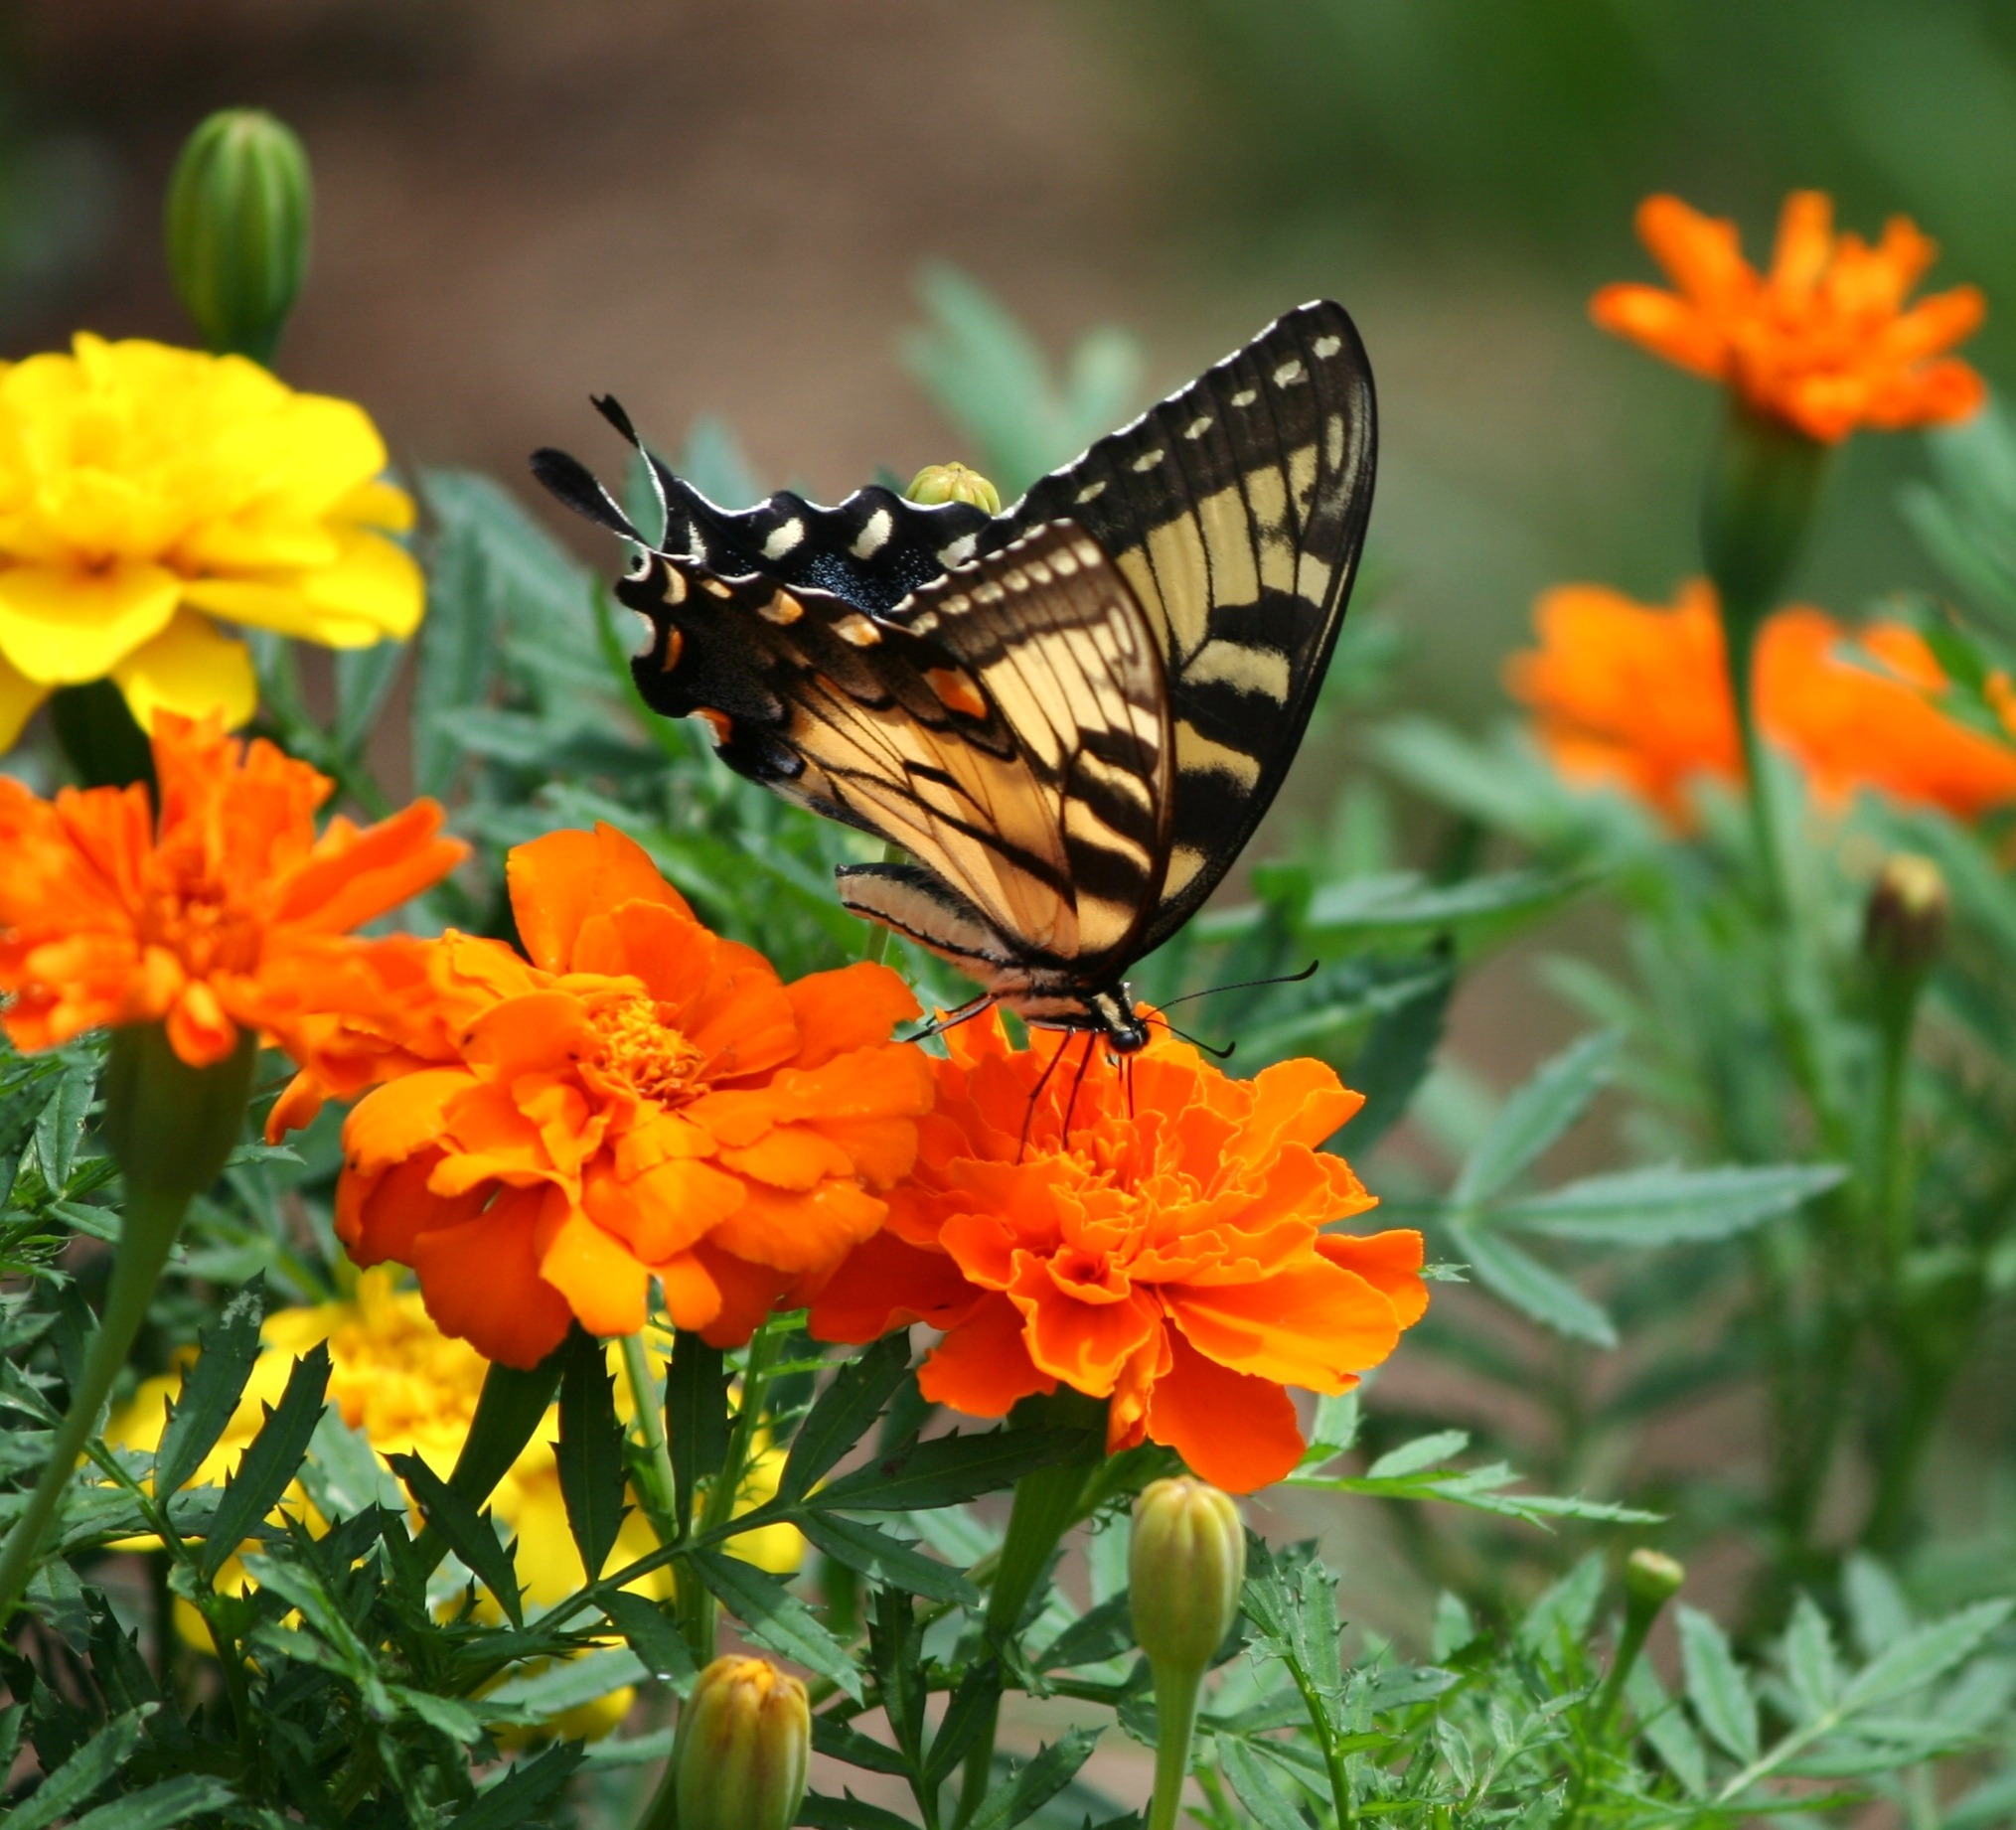 old-world-swallowtail-butterfly-papilio-machaon-insect-86416.jpeg